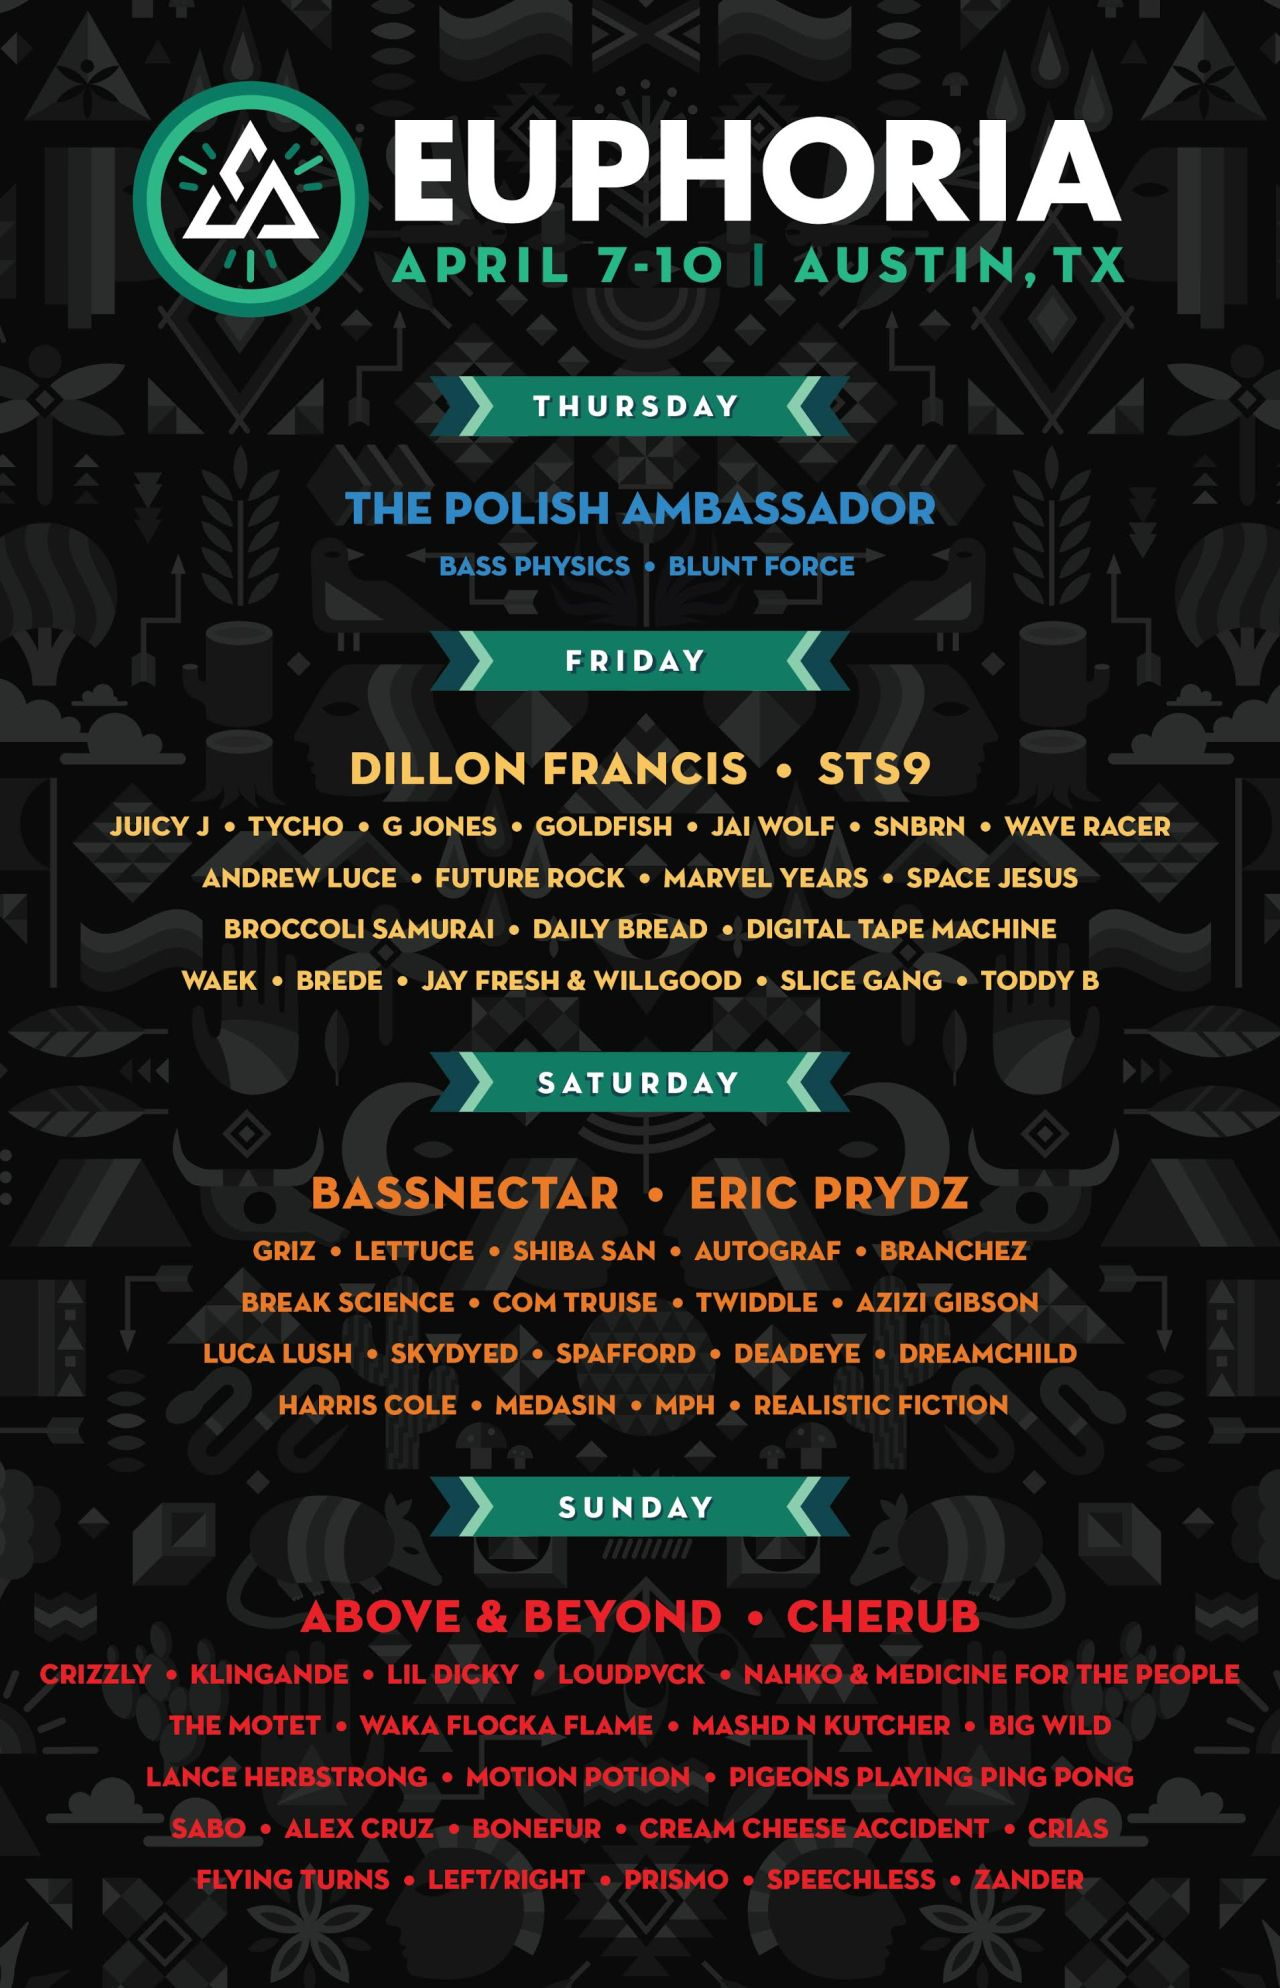 EUPHORIA MUSIC FESTIVAL ANNOUNCES ARTISTS BY DAY LINEUP AND PERFORMERS FOR THE NEW MOON PRE-PARTY ON APRIL 7TH